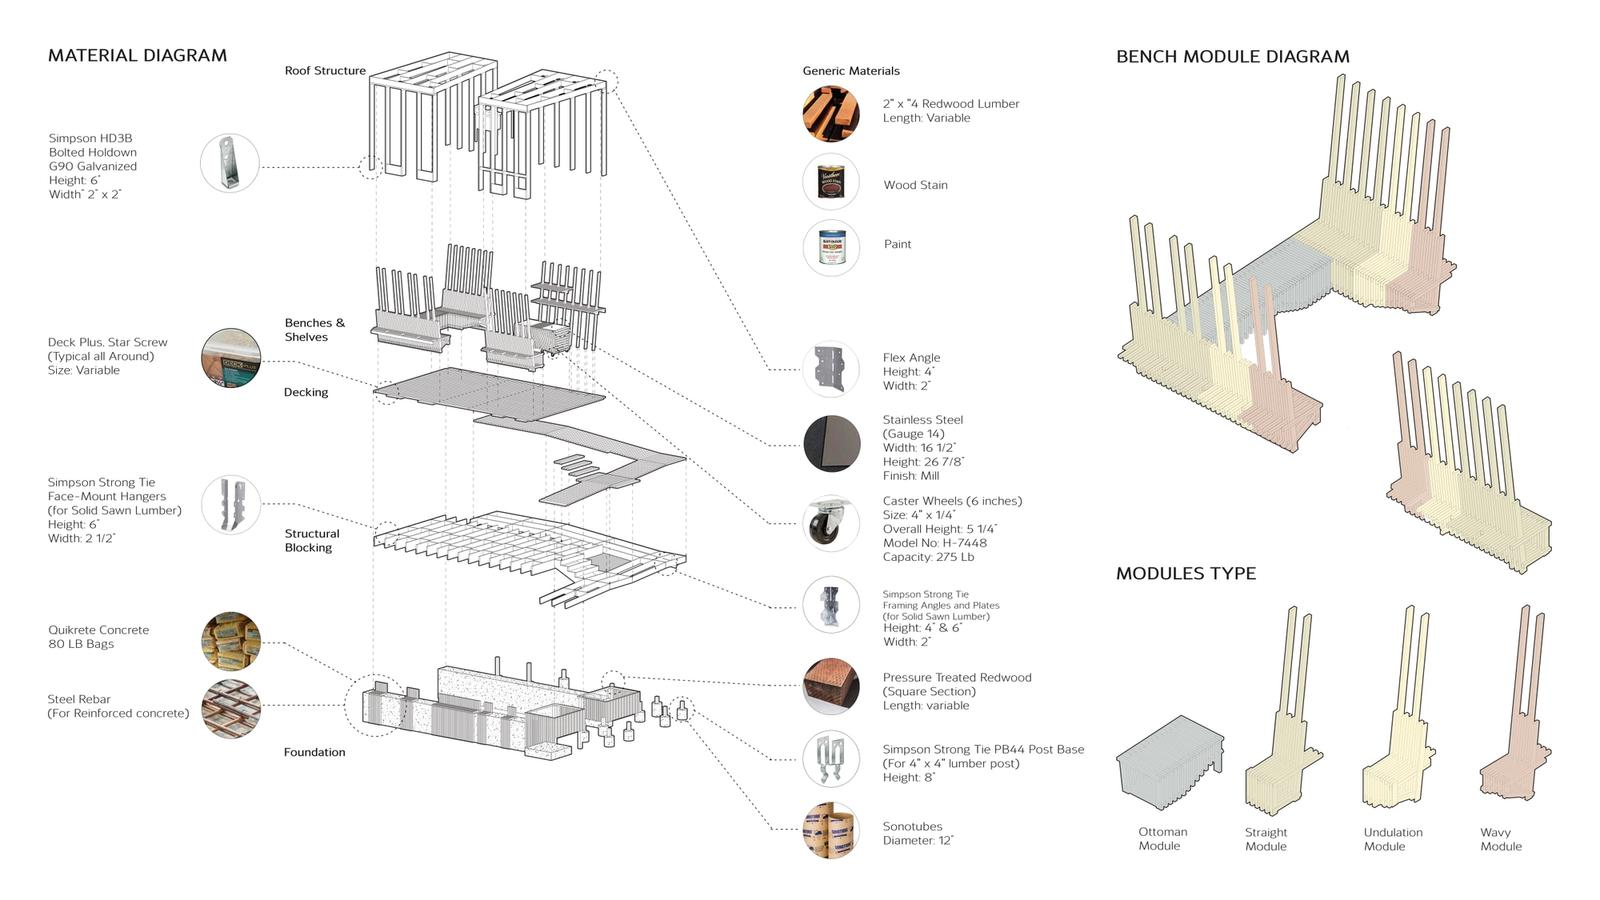 Diagrams of Materials, Bench Modules, and Module Types